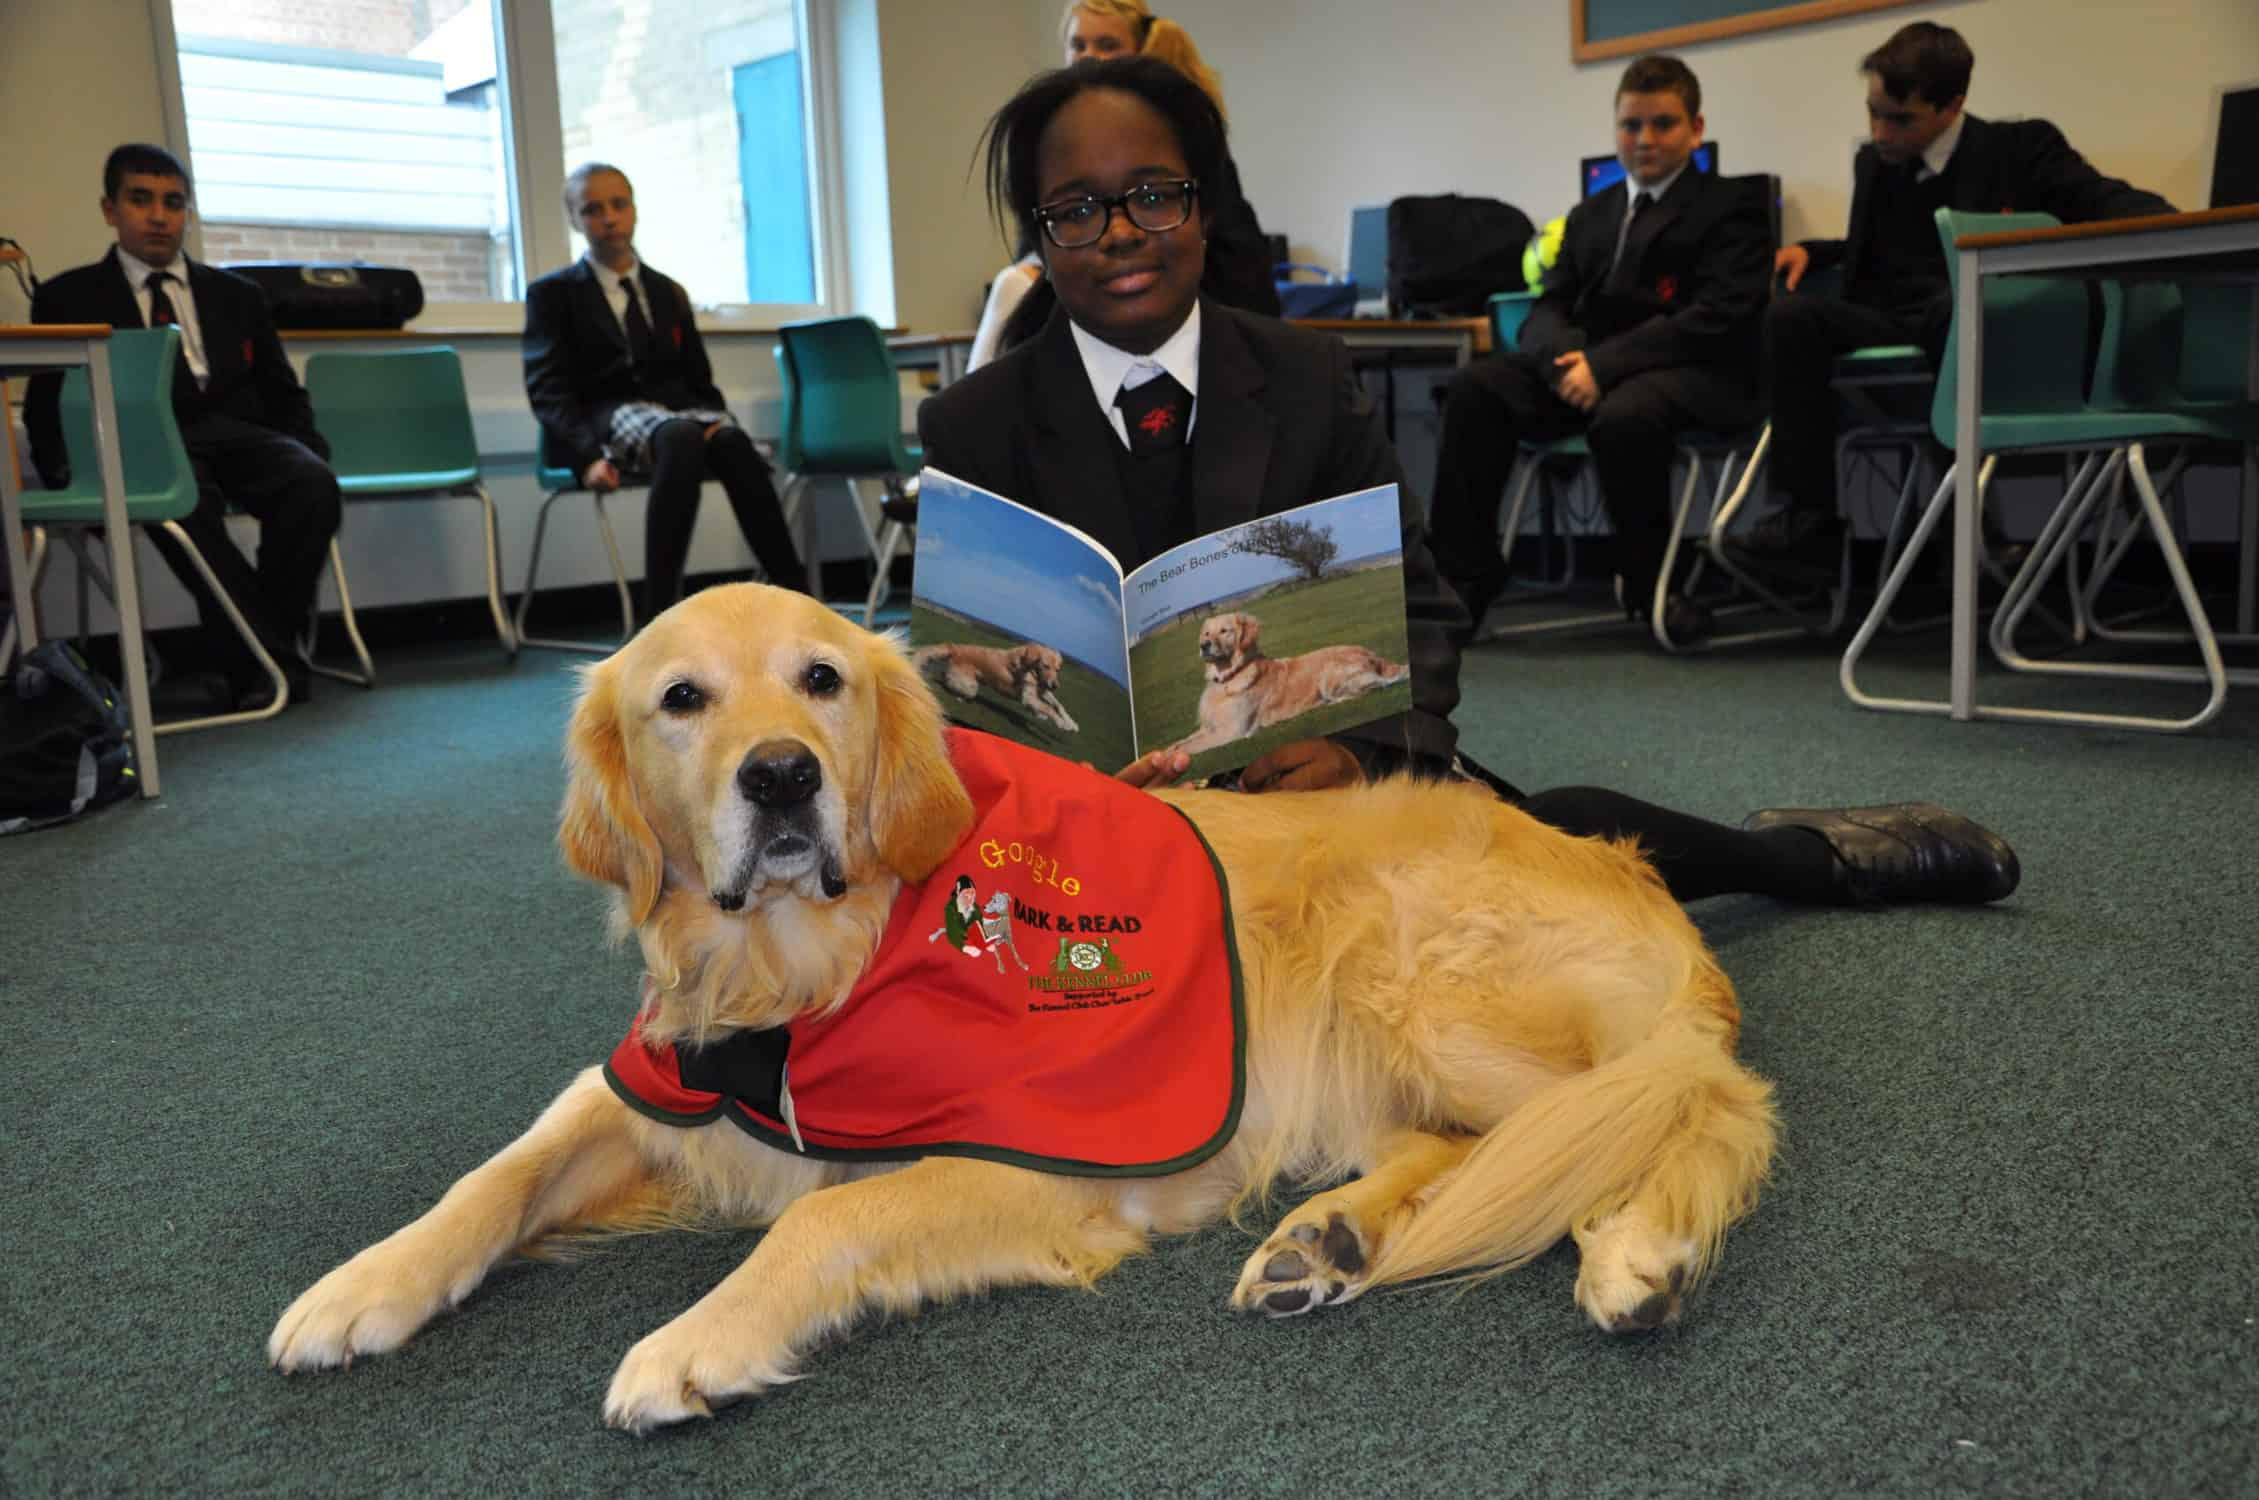 When kids read to dogs their reading and confidence is given a boost. The Kennel Club explains why they train dogs to read in schools to improve literacy programs.